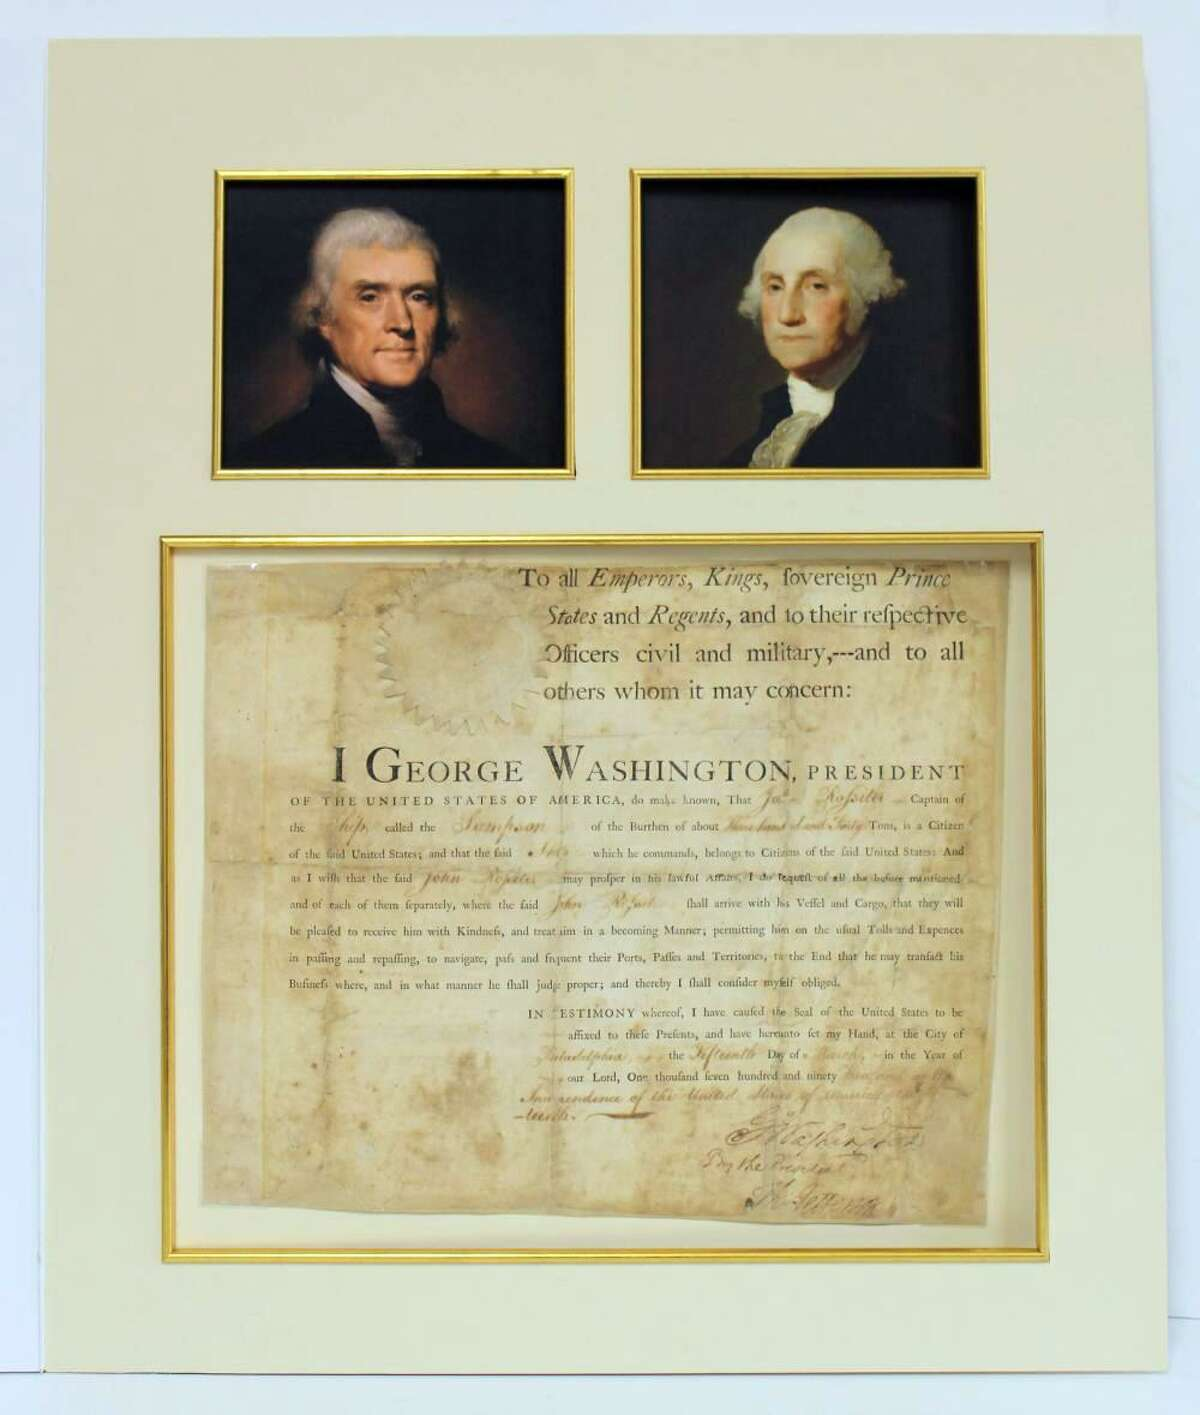 A ship passport March 15, 1793 signed by George Washington and Thomas Jefferson regarding the British-seized ship